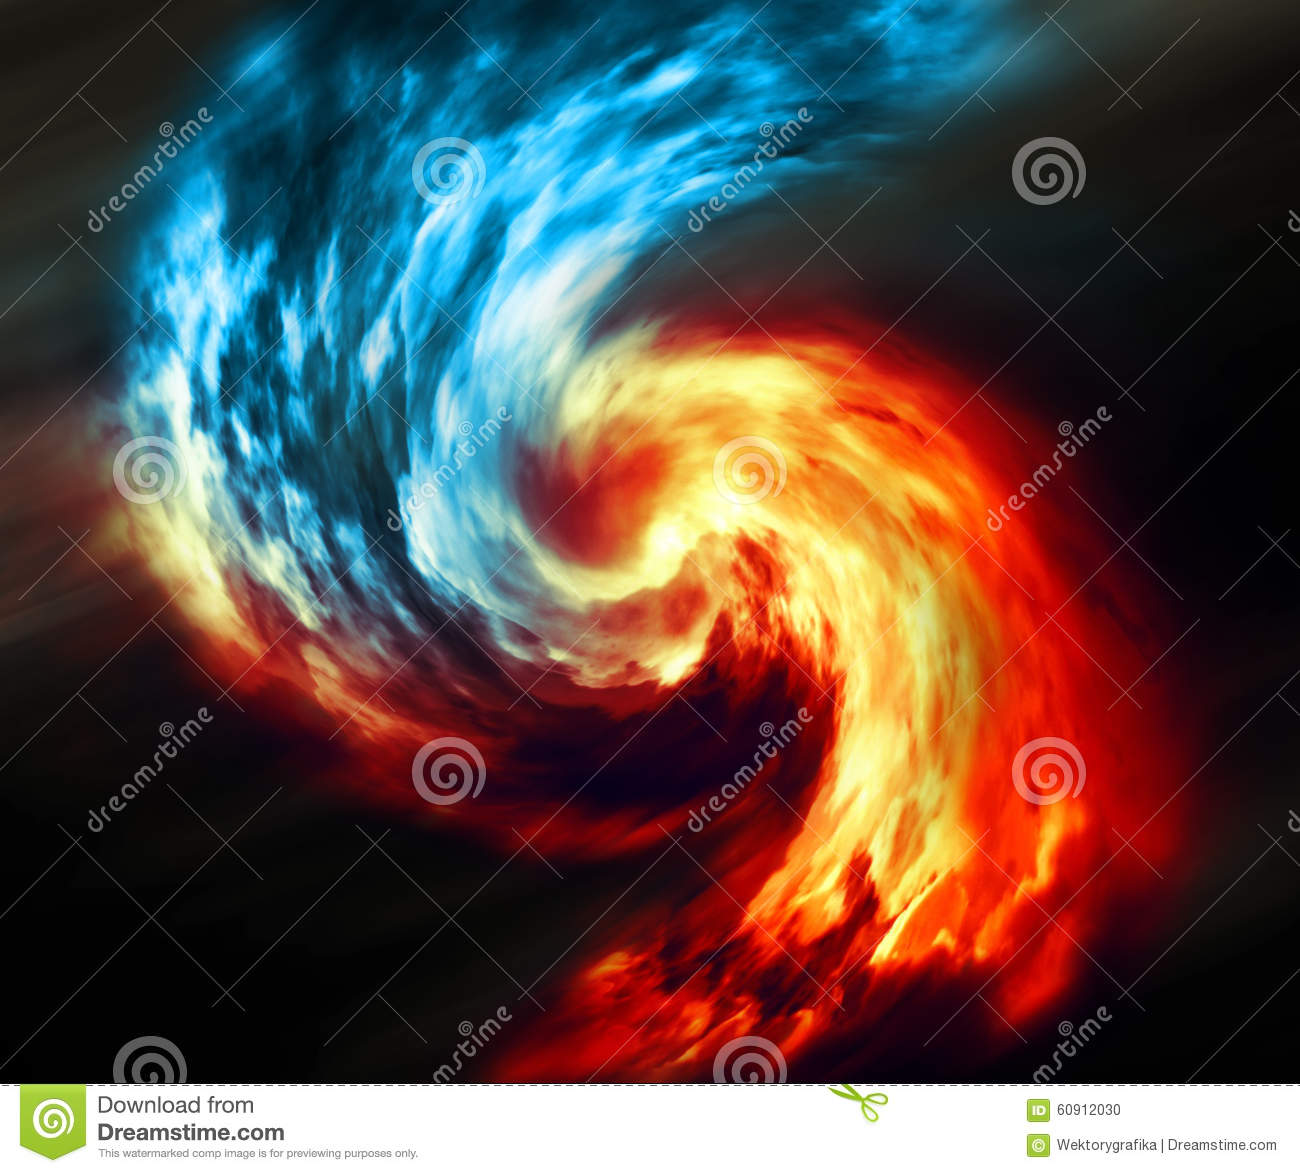 fire and ice abstract background red and blue smoke swirl